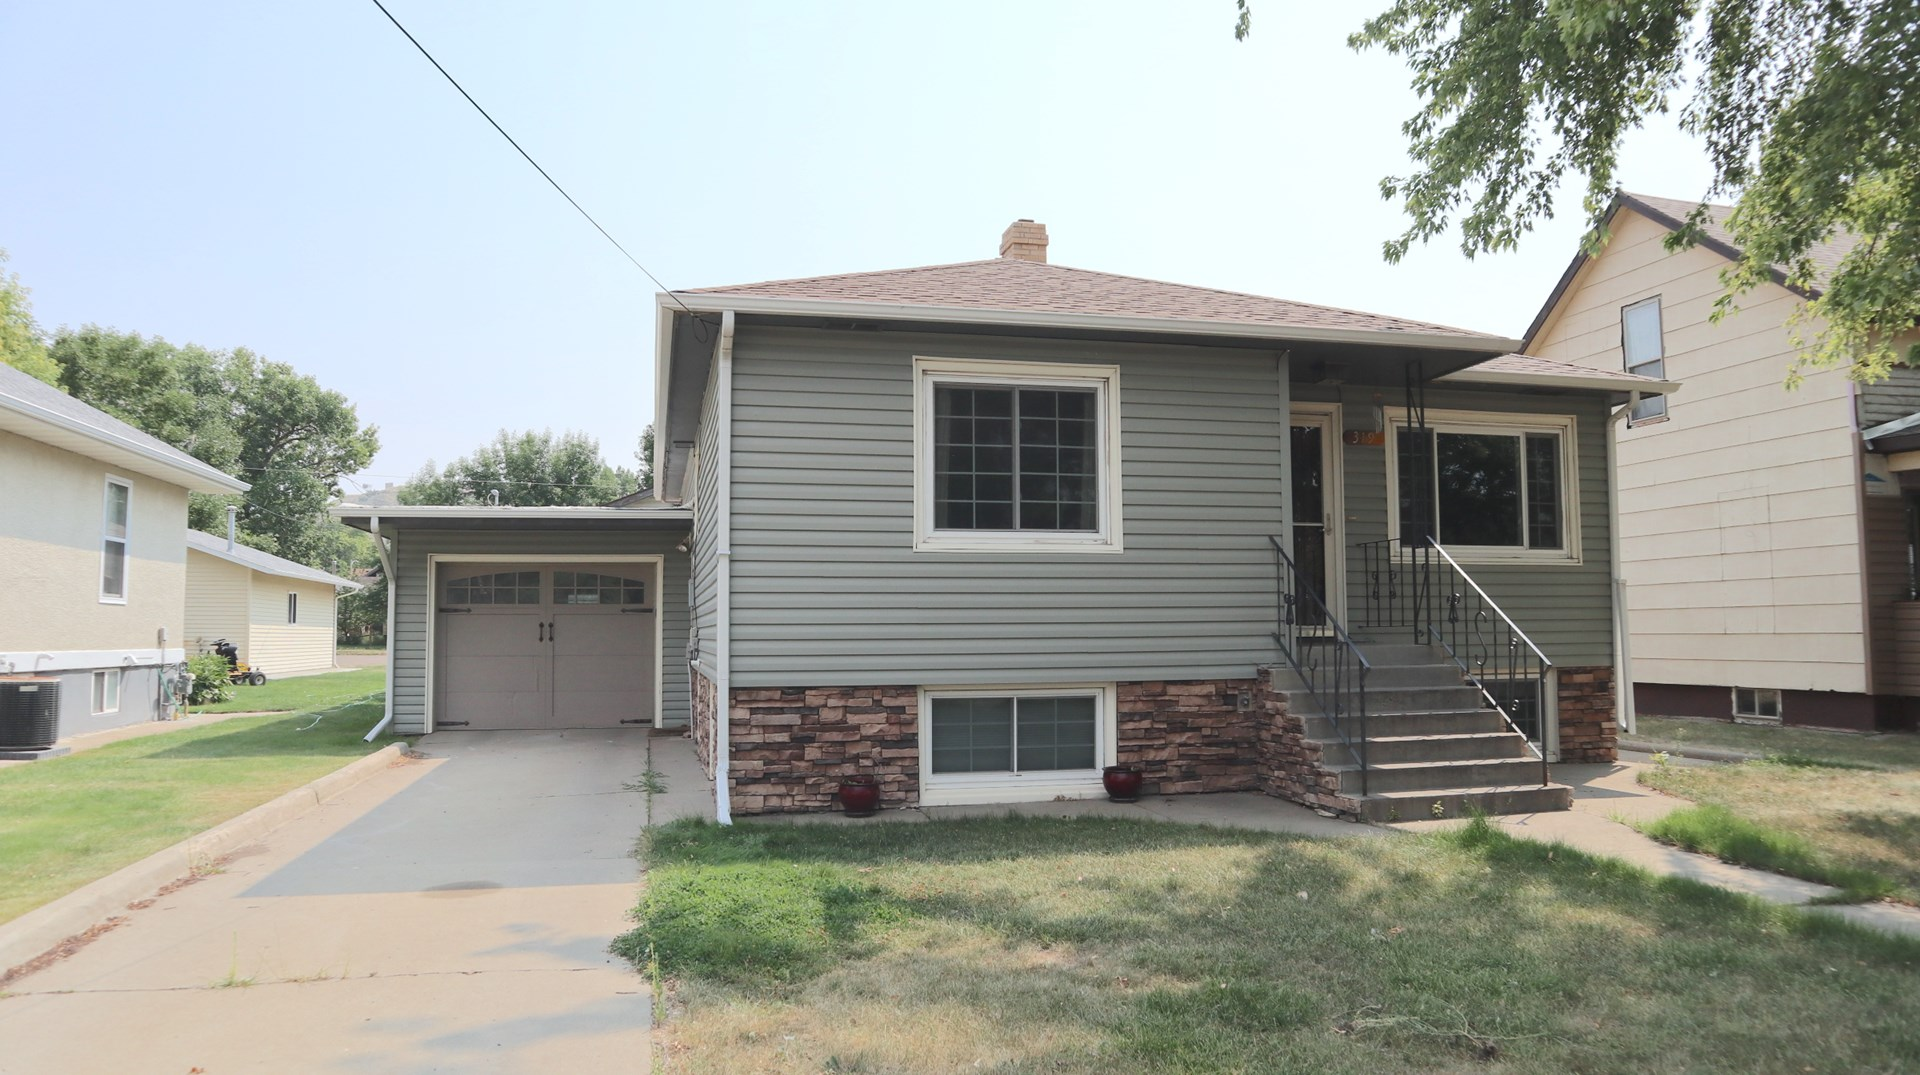 Move-in Ready 5 bd/1.75 bath Home for Sale in Glendive MT